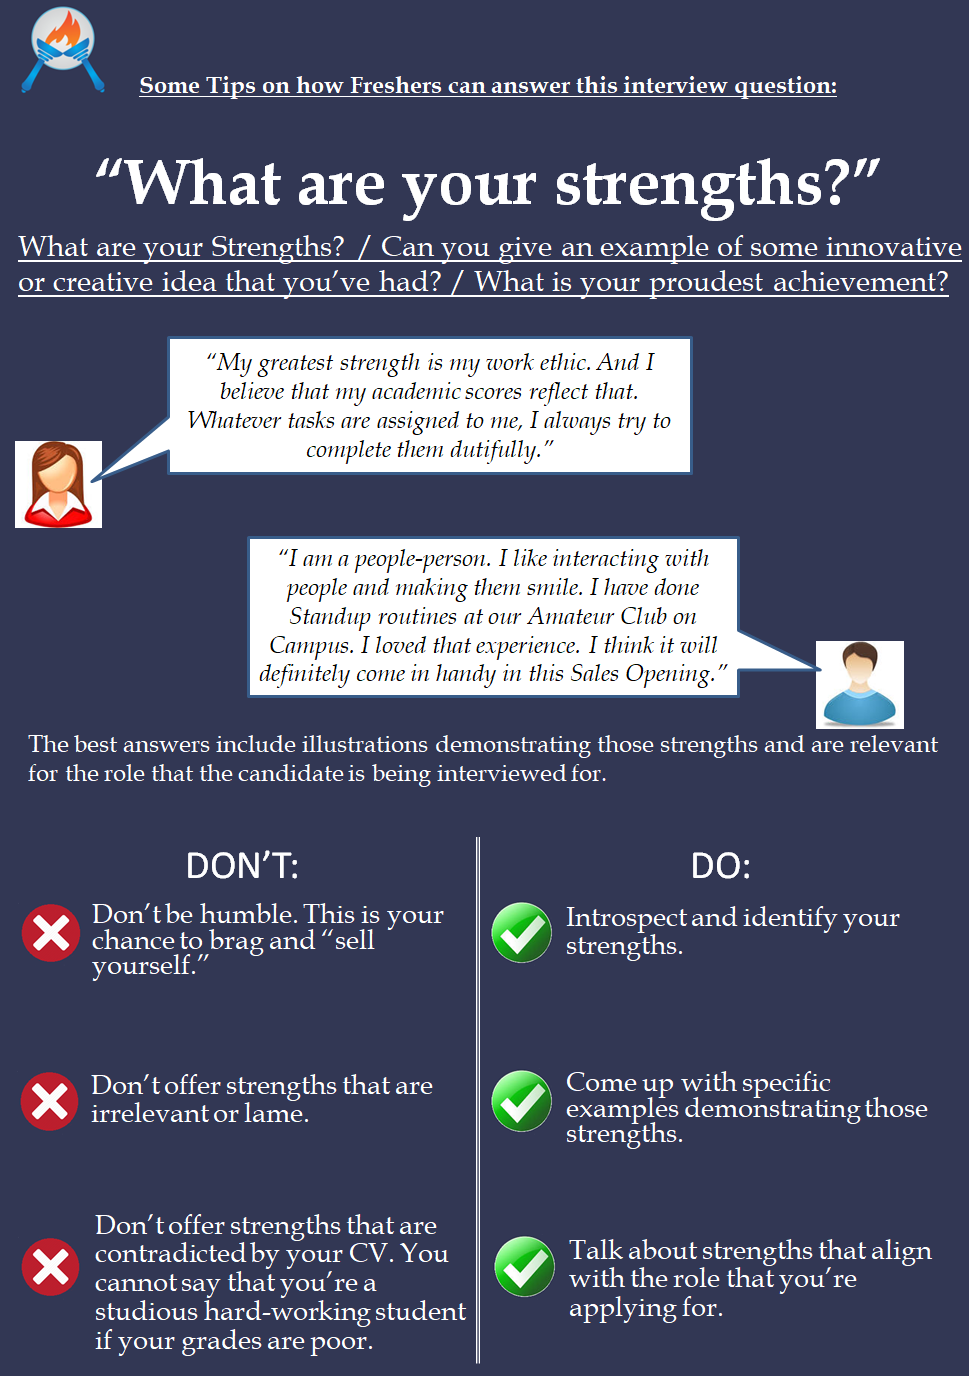 tips on answering commonly asked interview questions on